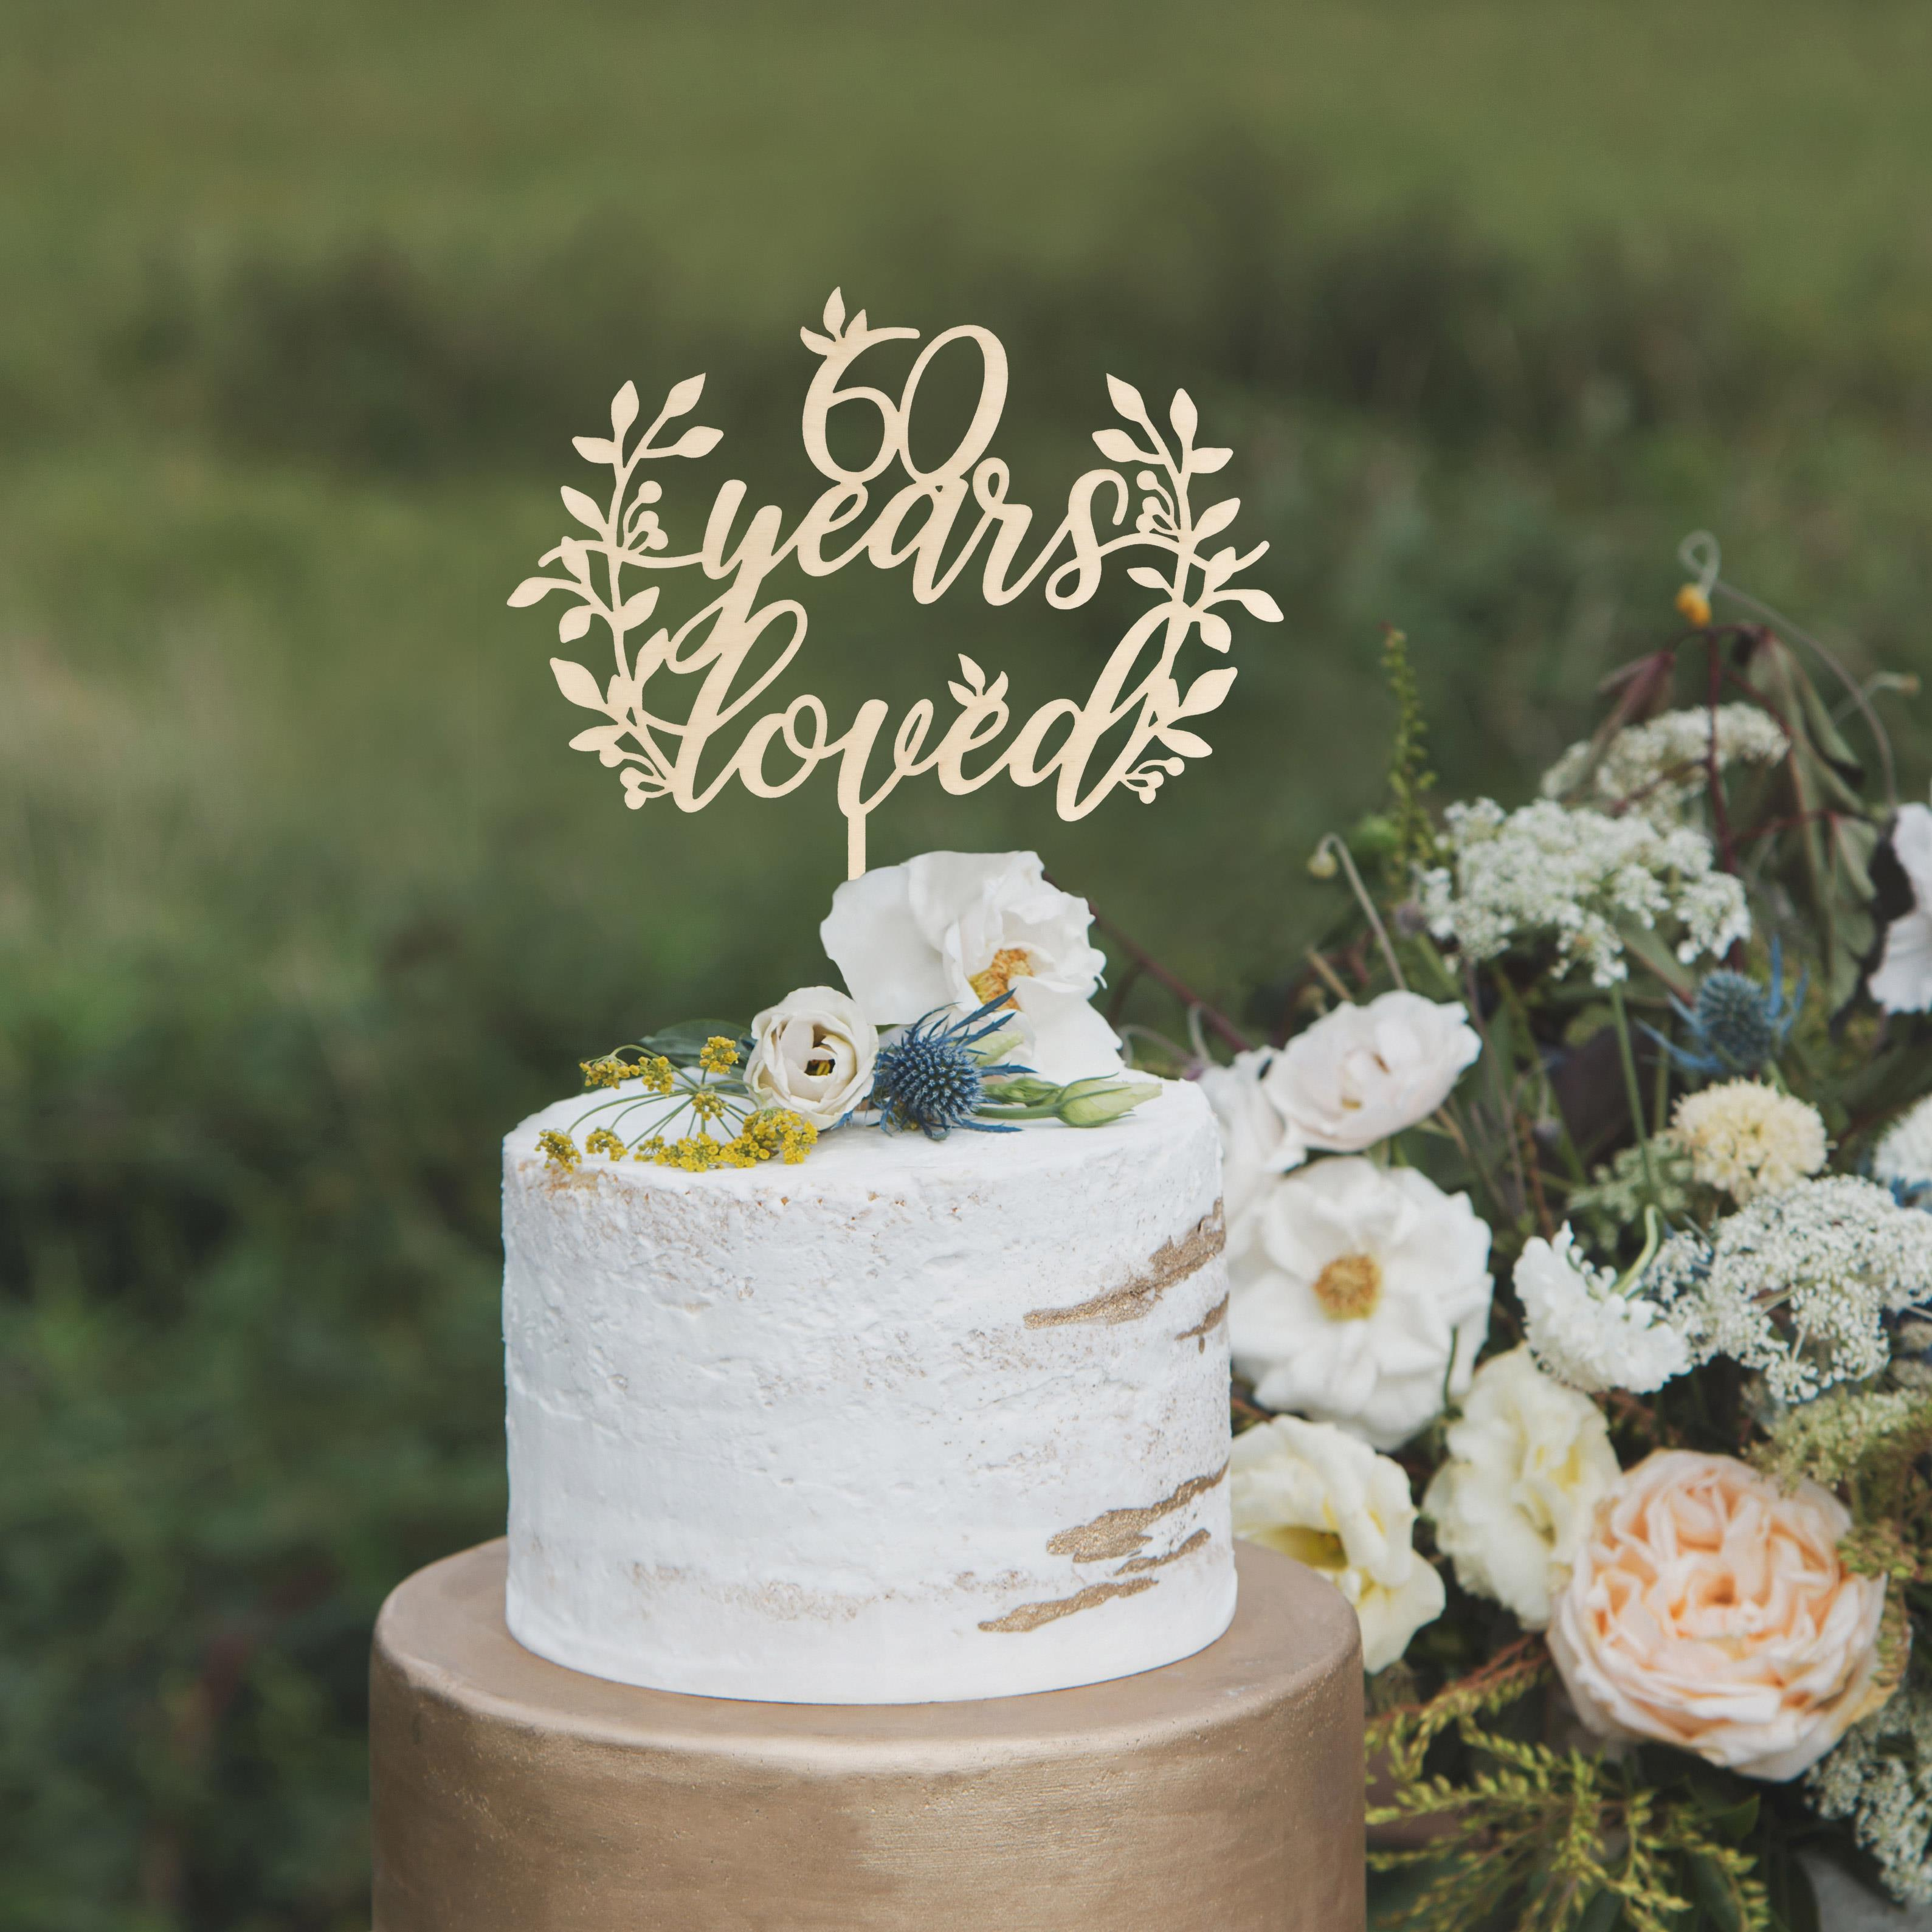 60 Years Loved Cake Topper by Thistle and Lace